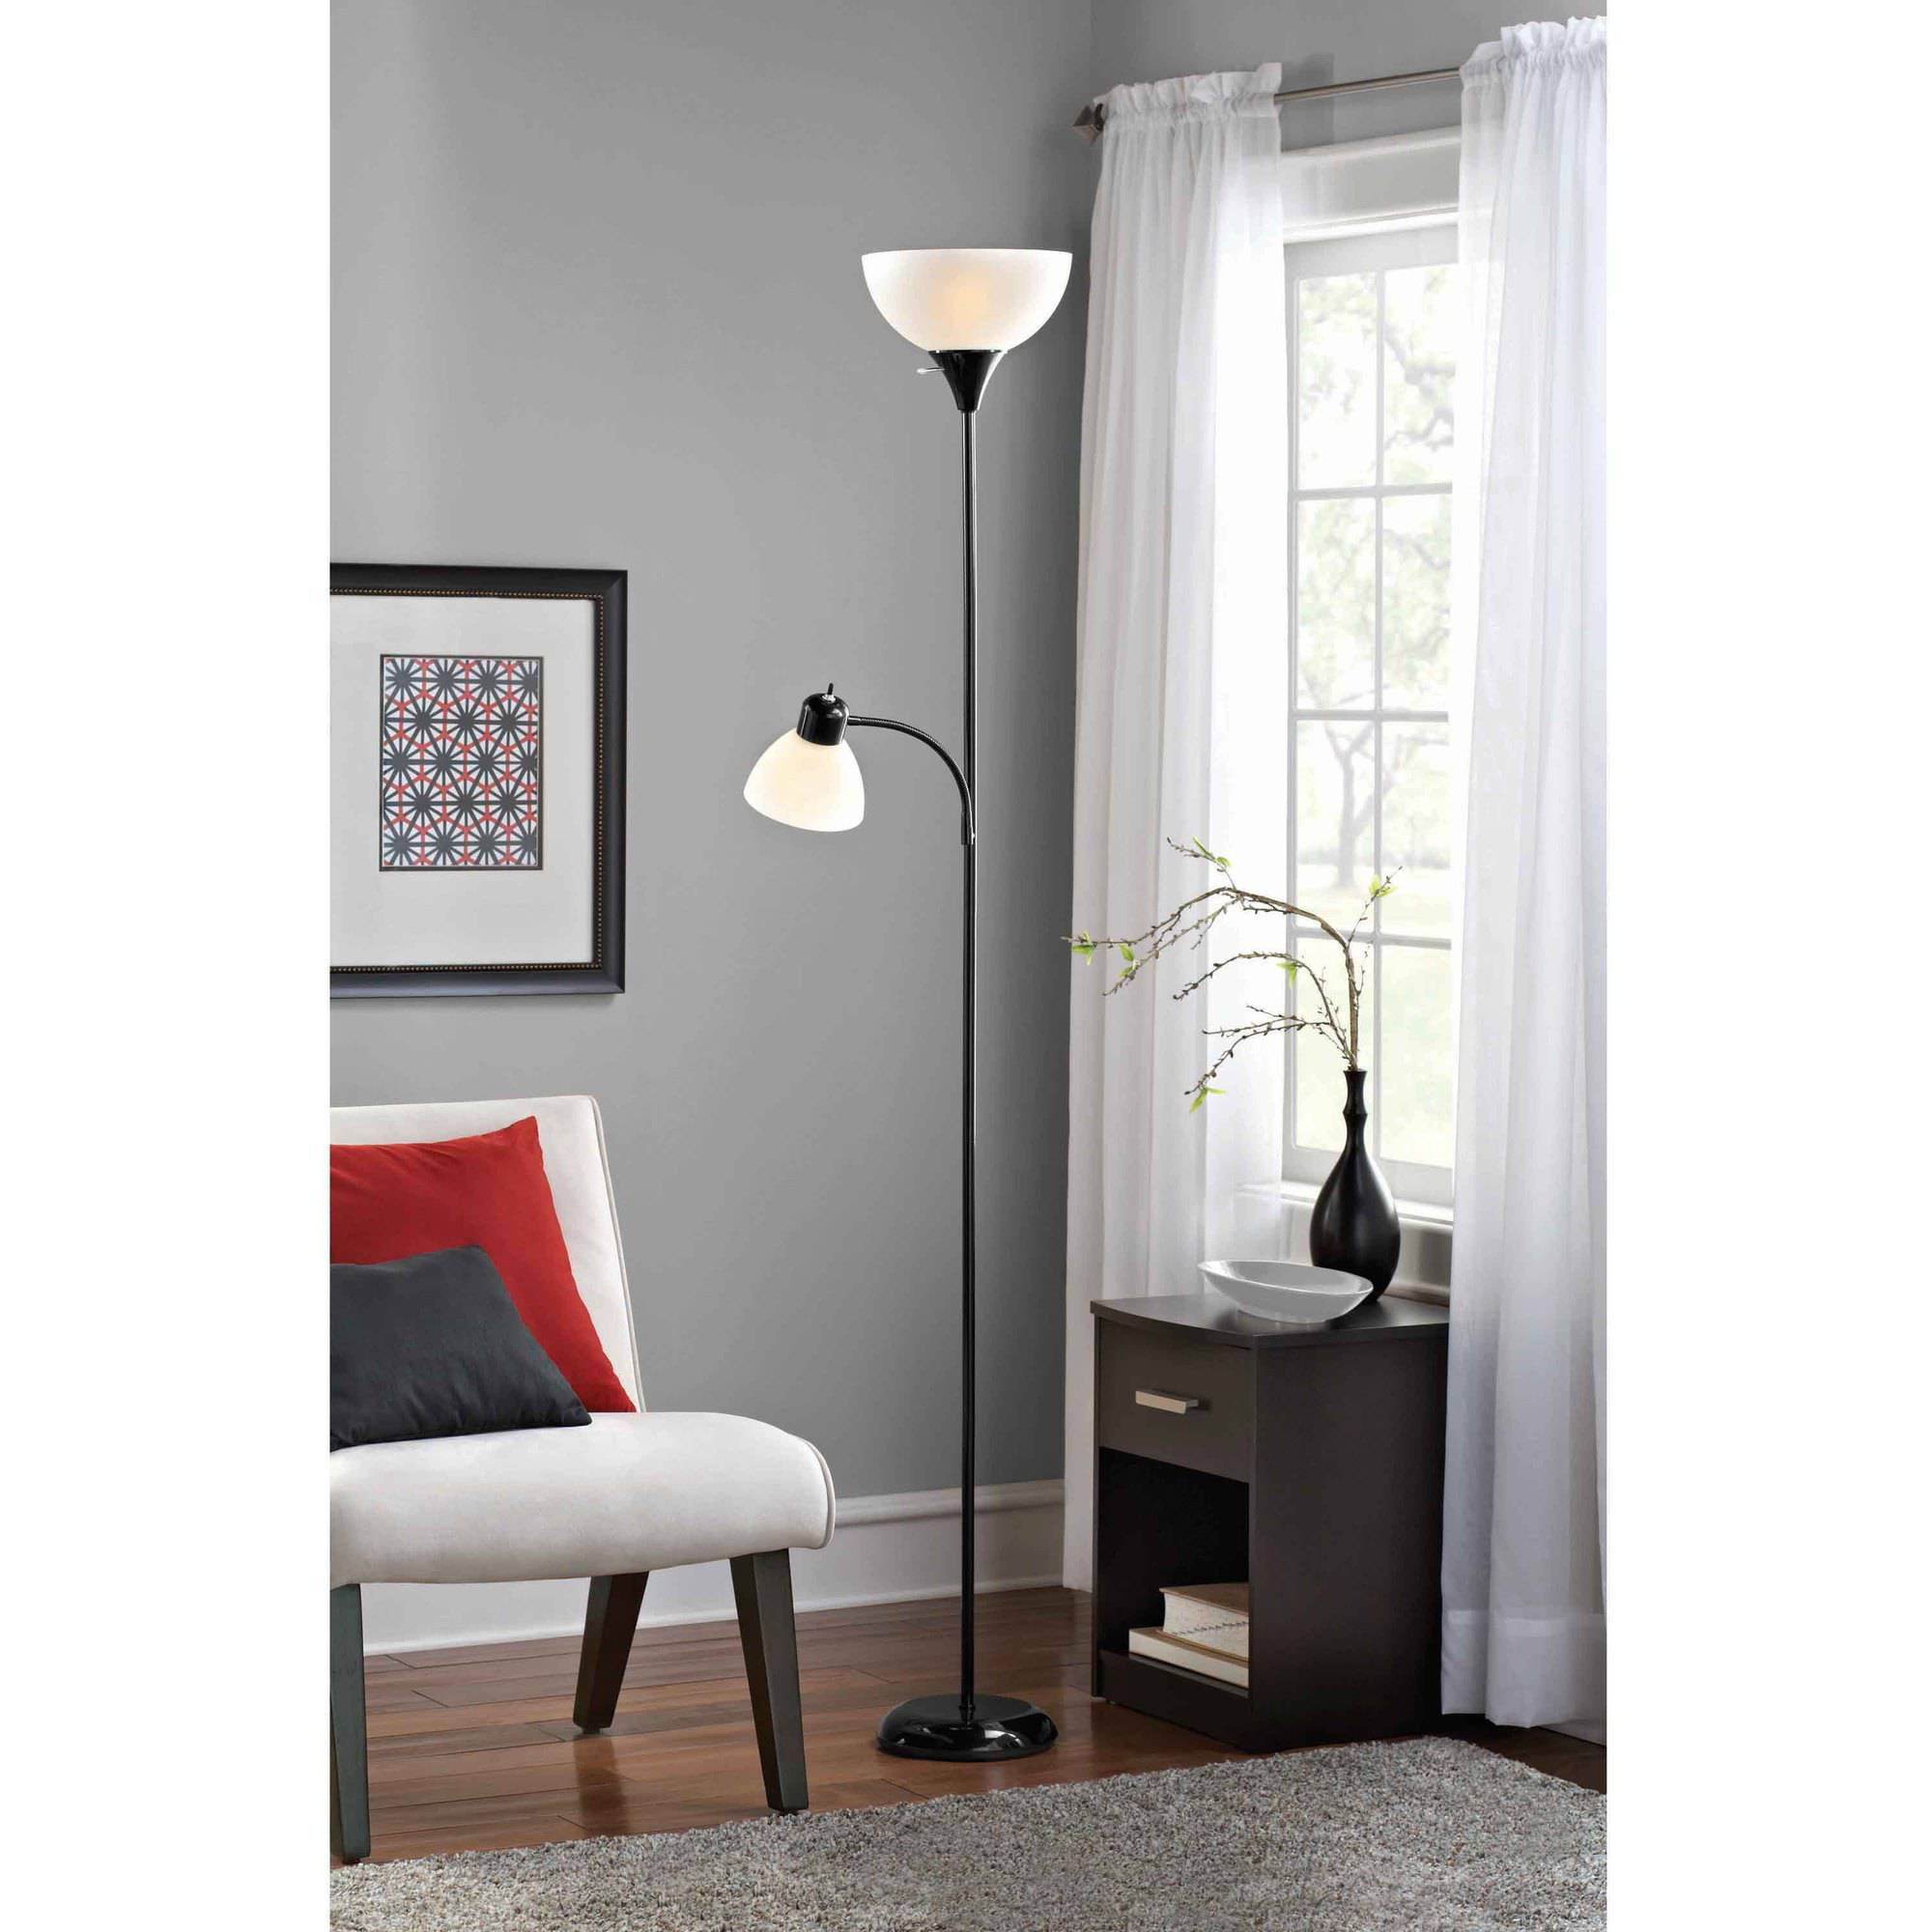 Mainstays Combo Floor Lamp with CFL Bulb Included